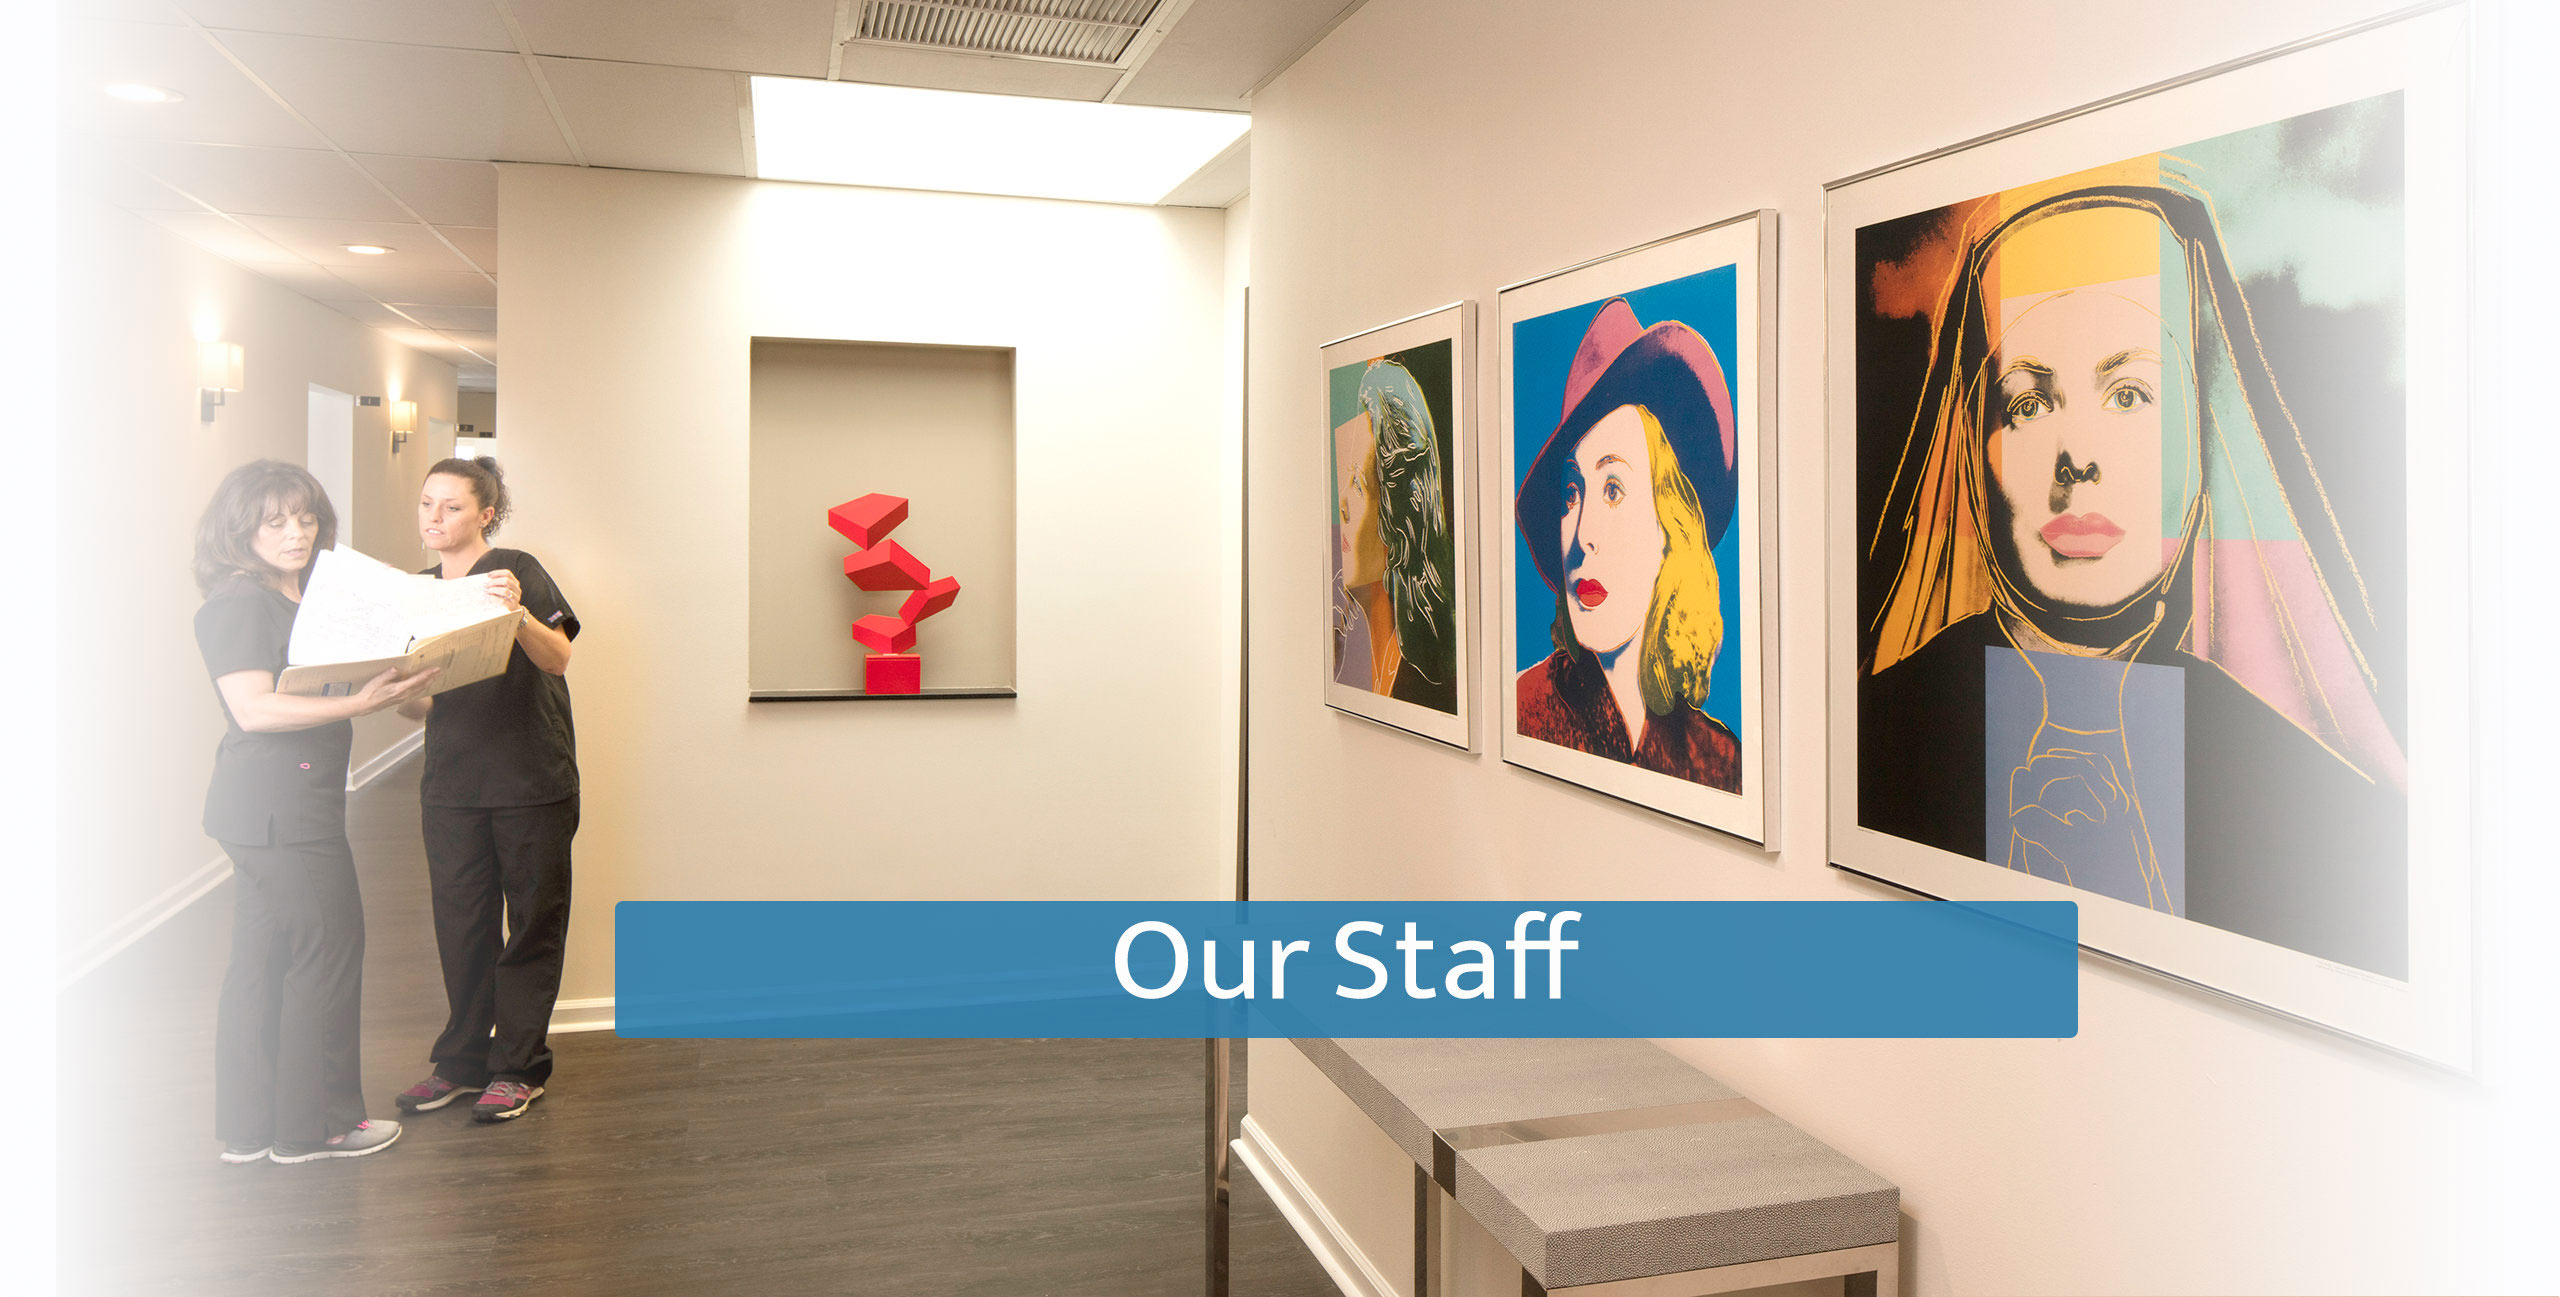 Our Staff